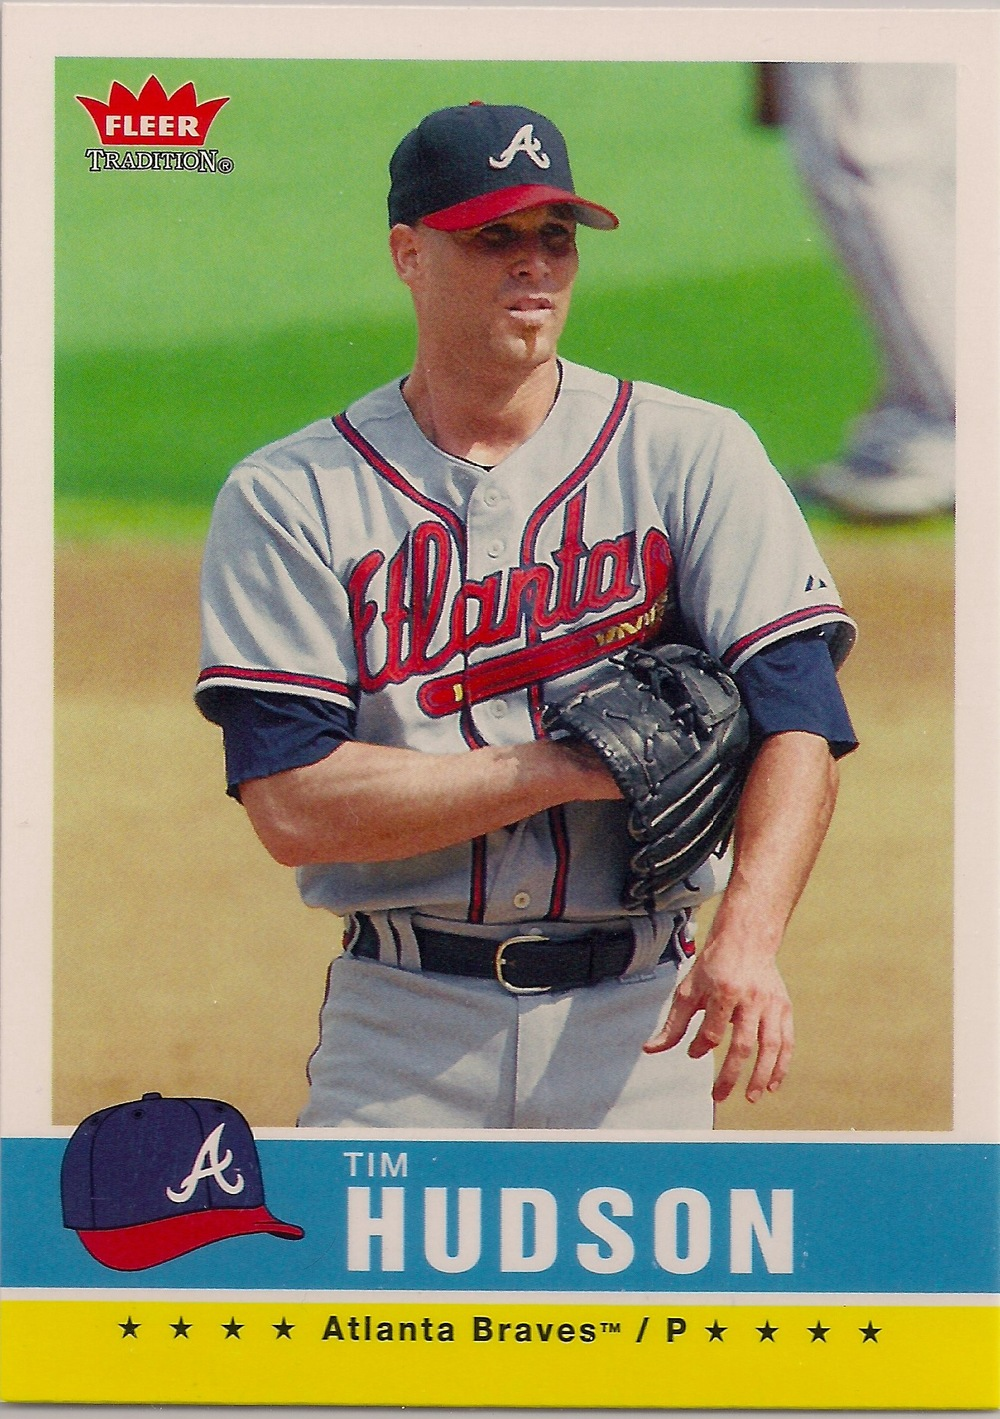 2006 Fleer Tradition #4